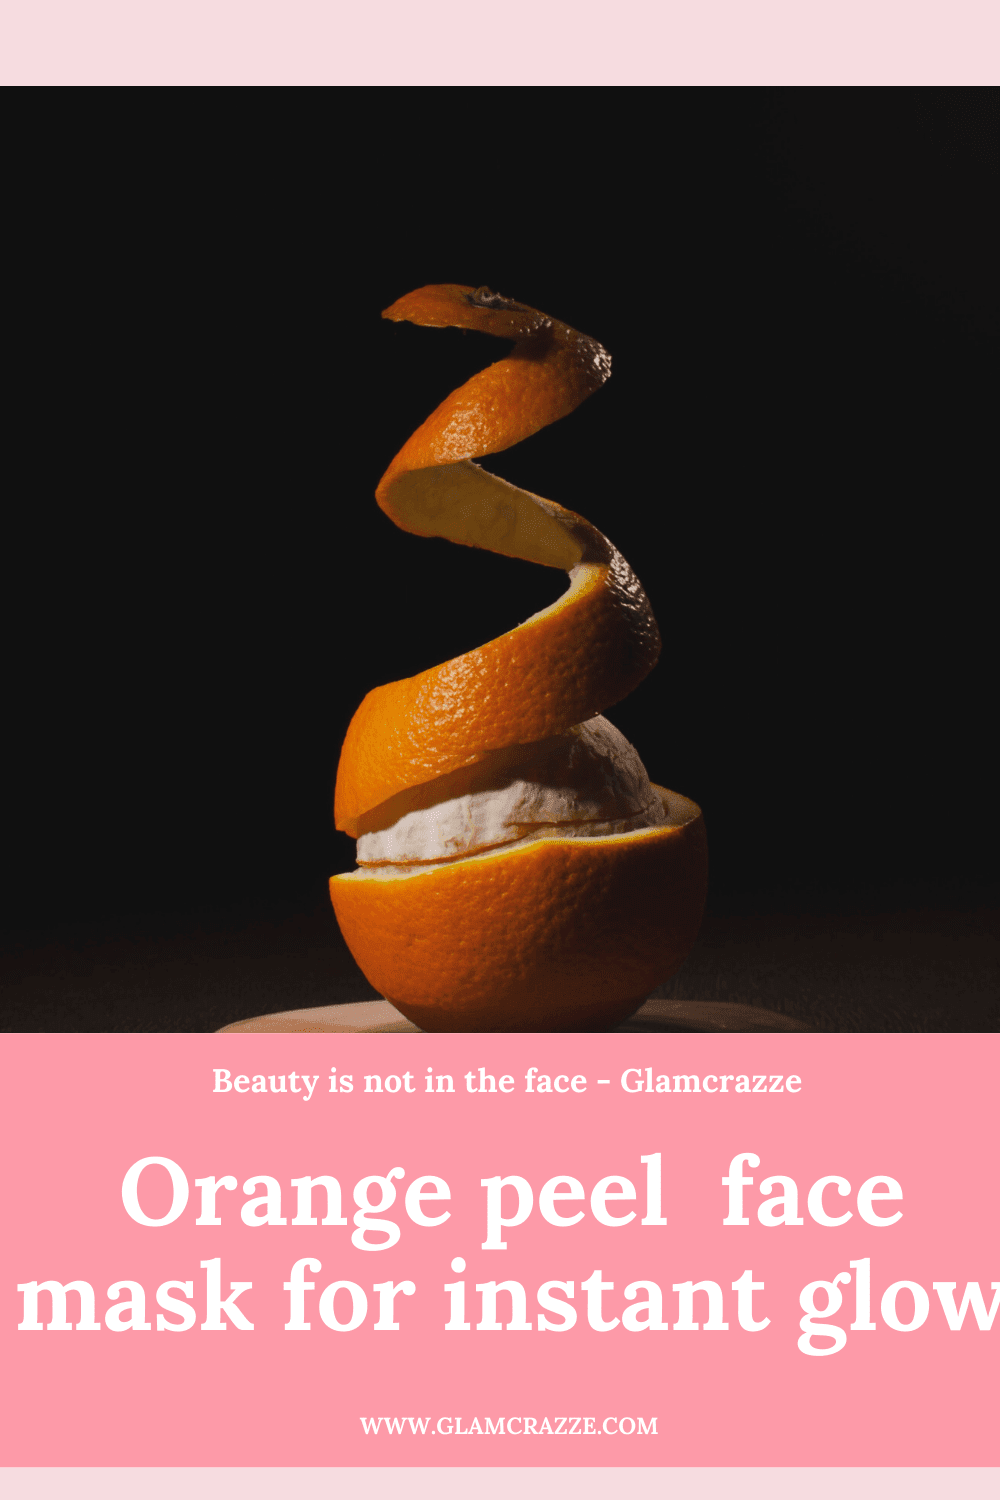 homemade face pack for instant glow and fairness using orange peel